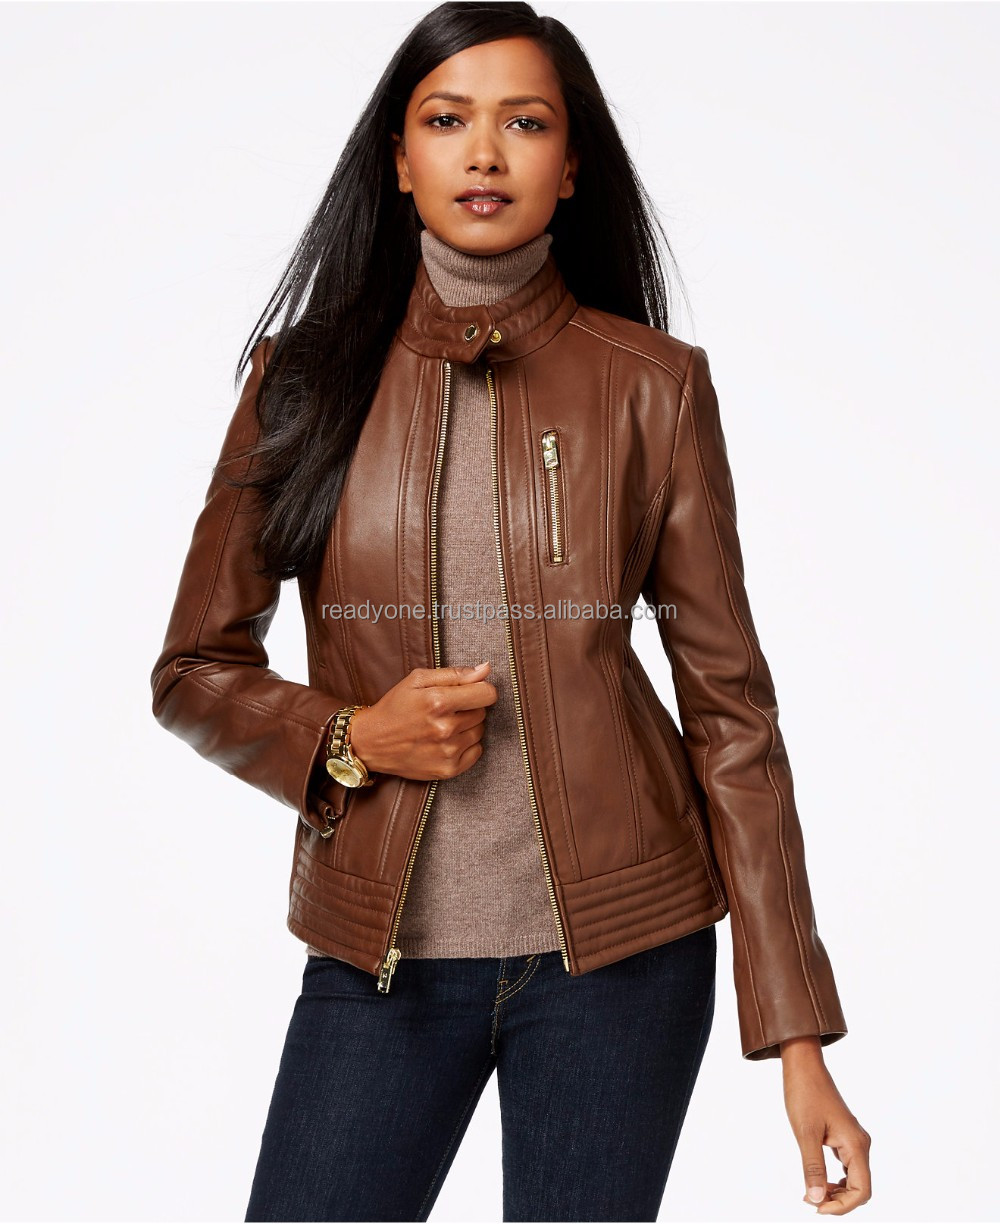 Womens Stylish Iconic Real Genuine Sheep Leather Jacket